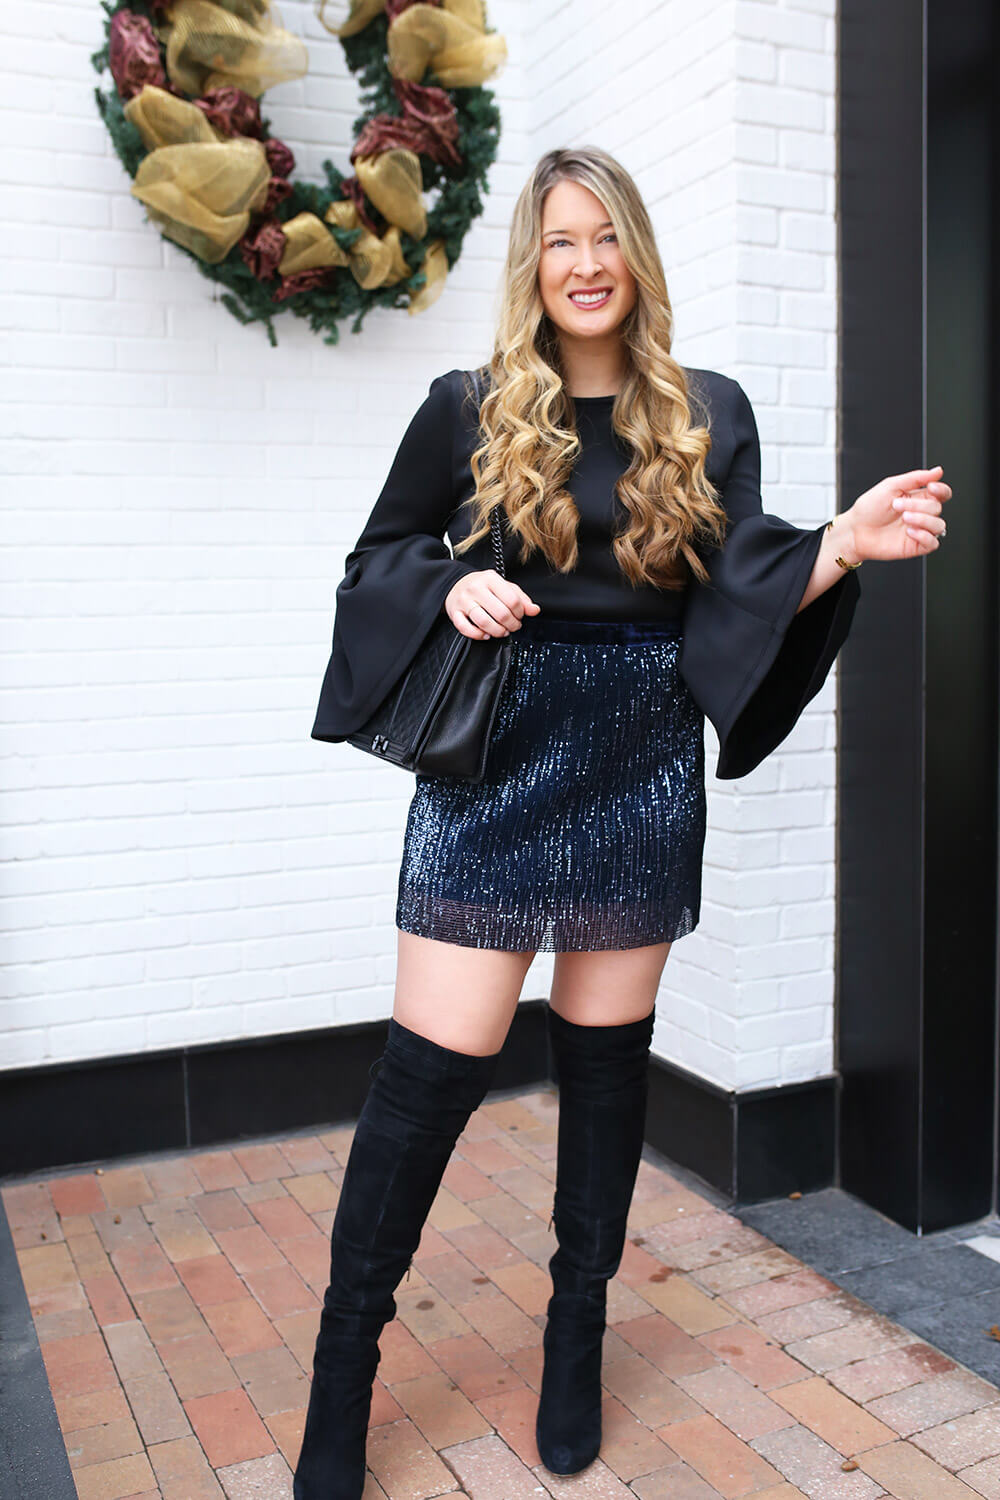 Still trying to figure out what to wear to ring in 2018? Here are New Year's Eve Inspiration from Nordstrom. Plus, see how you can enter to win a $1,000 gift card to Nordstrom. Sparkly skirt. Neoprene top with bell sleeves. Over-the-knee boots for NYE.